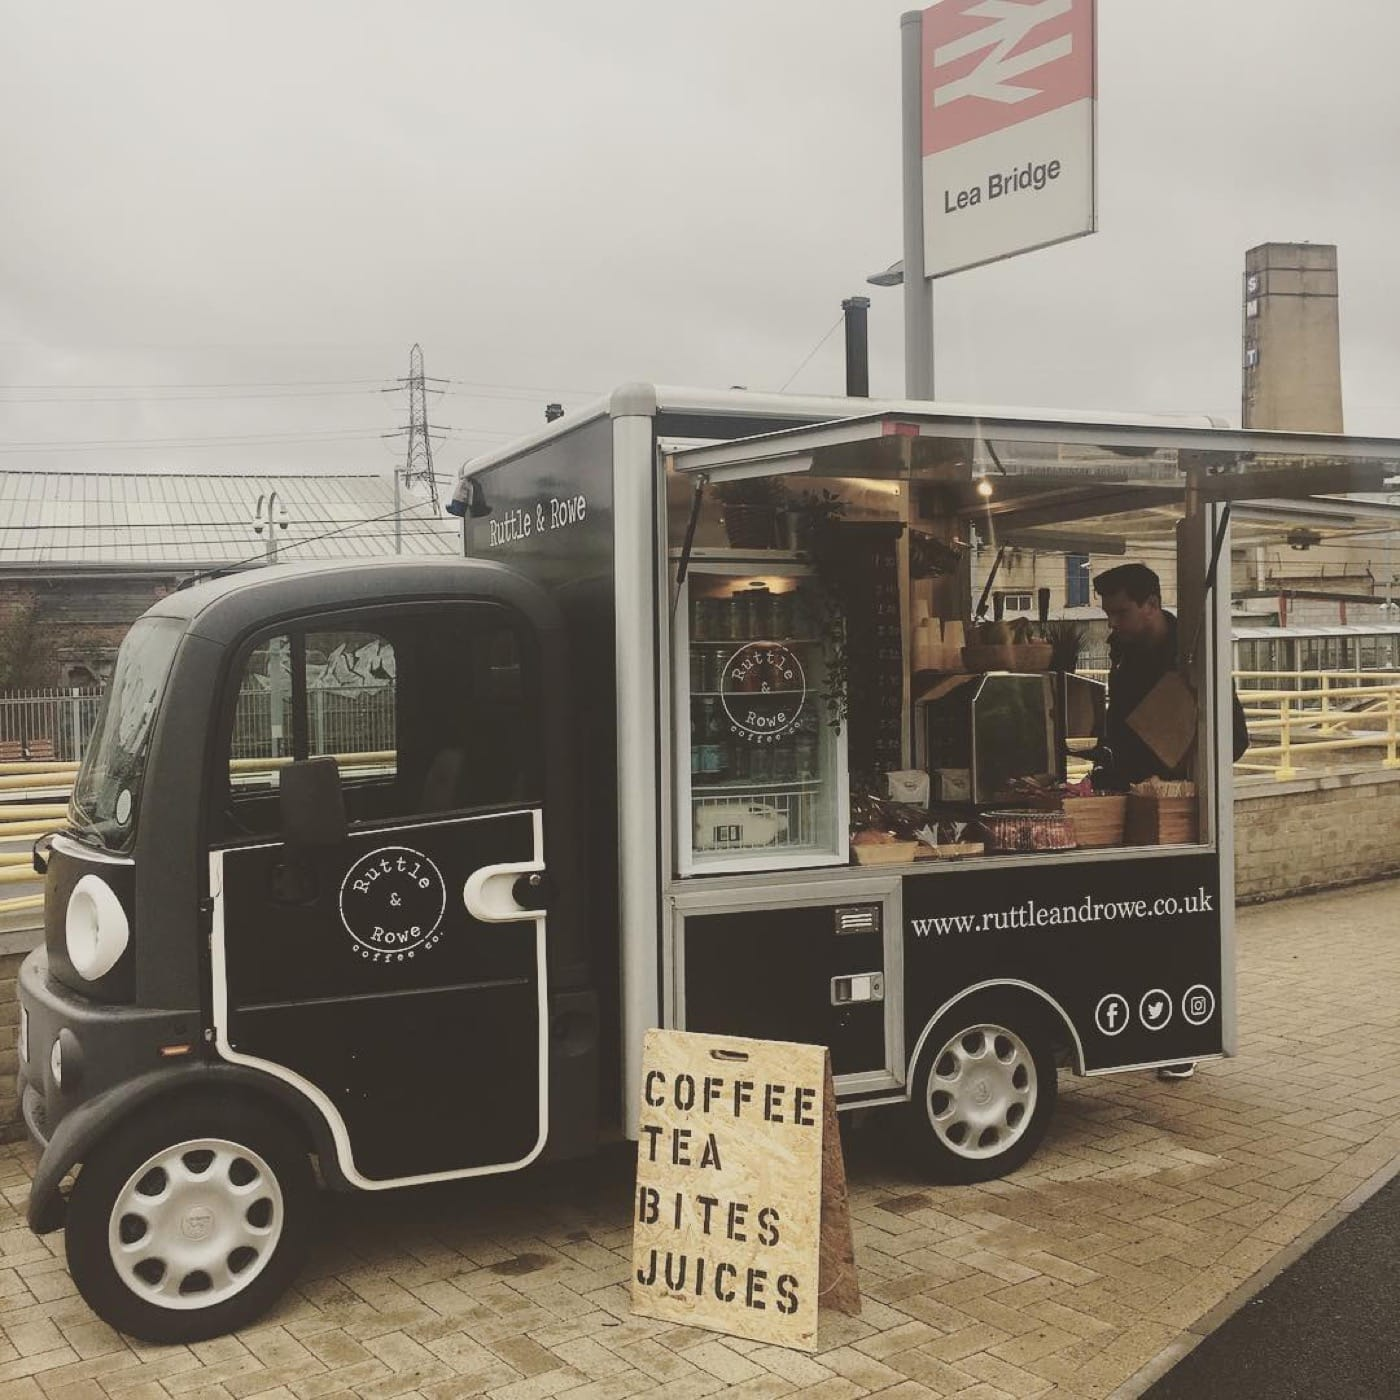 Feast-It-Ruttle-and-Rowe-Mobile-Coffee-Van-Street-Food-Espresso-Martinis-Speciality-Coffee-Event-Catering-Wedding-Catering-Book-Now